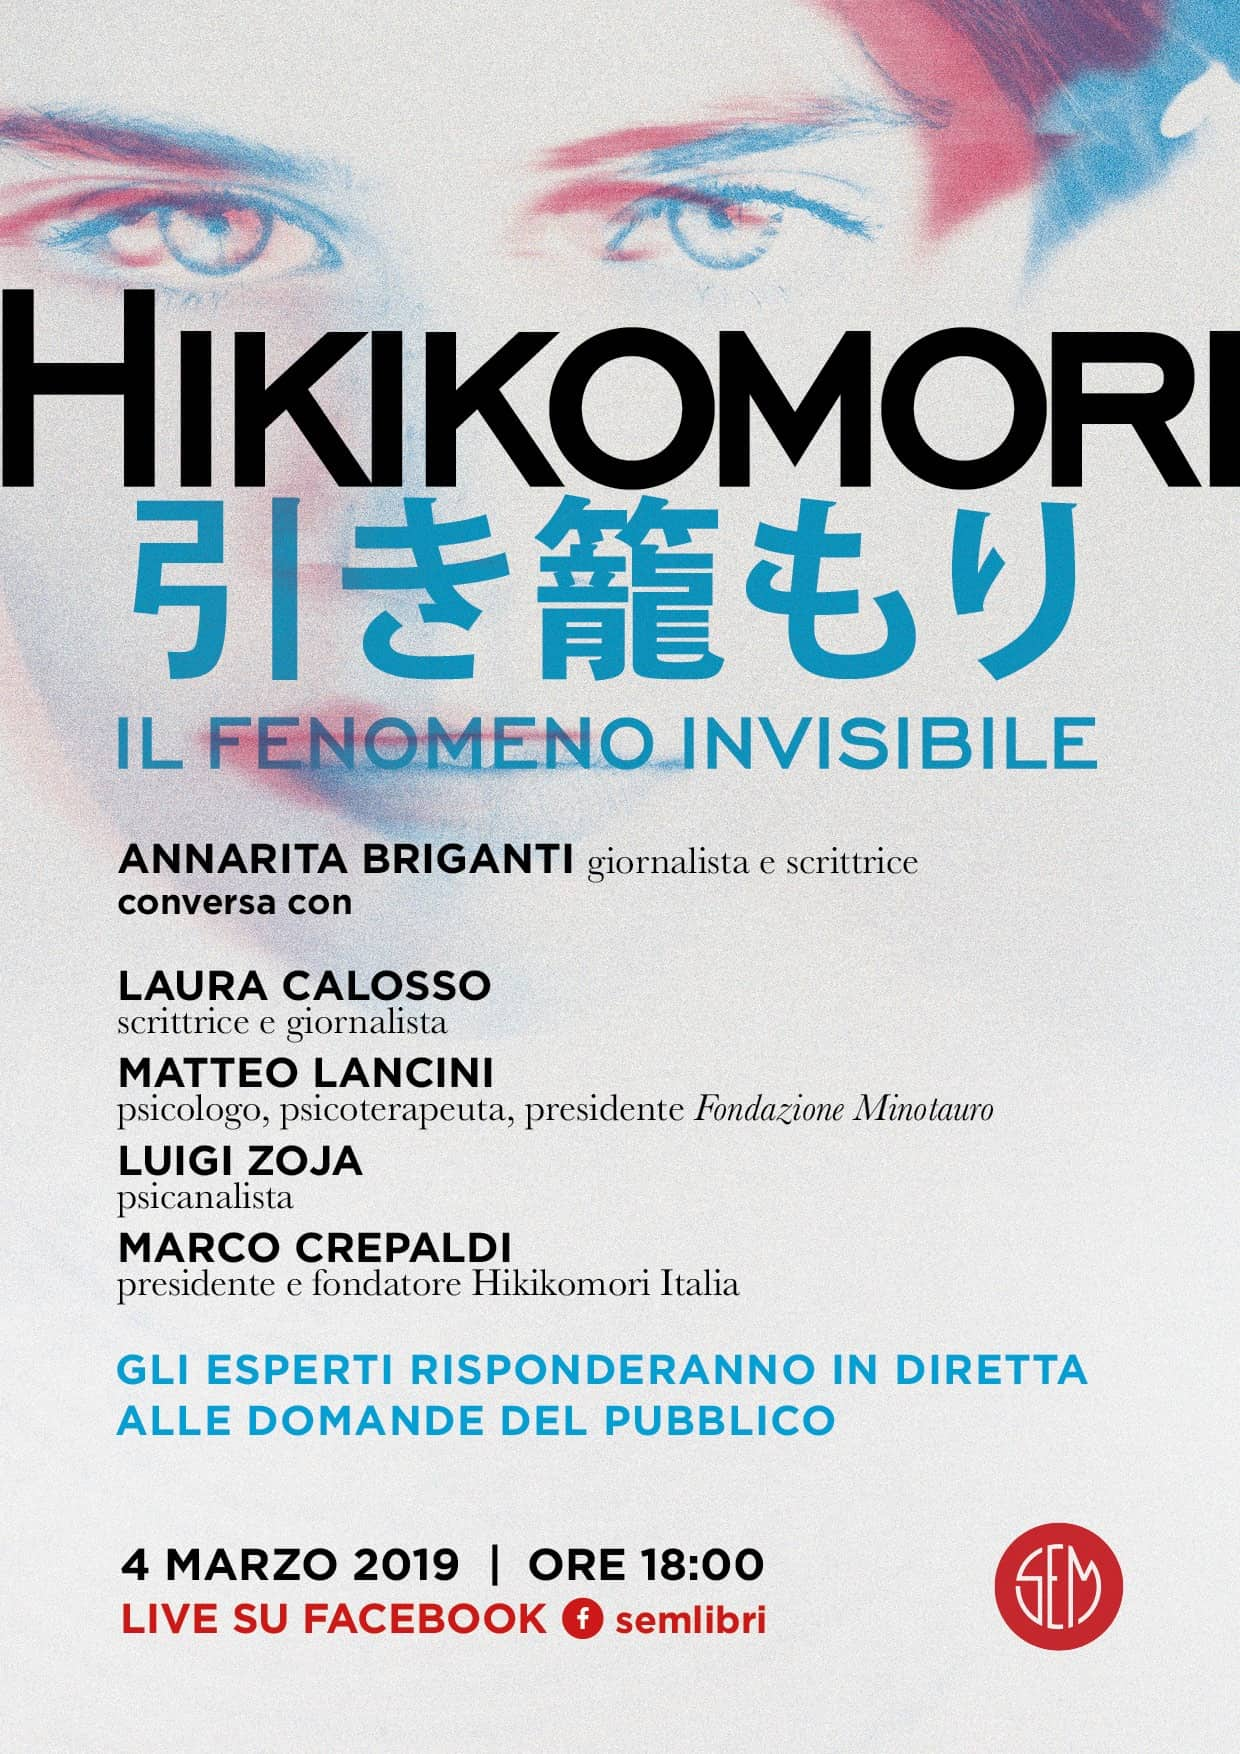 Hikikomori-il-fenomeno-invisibile